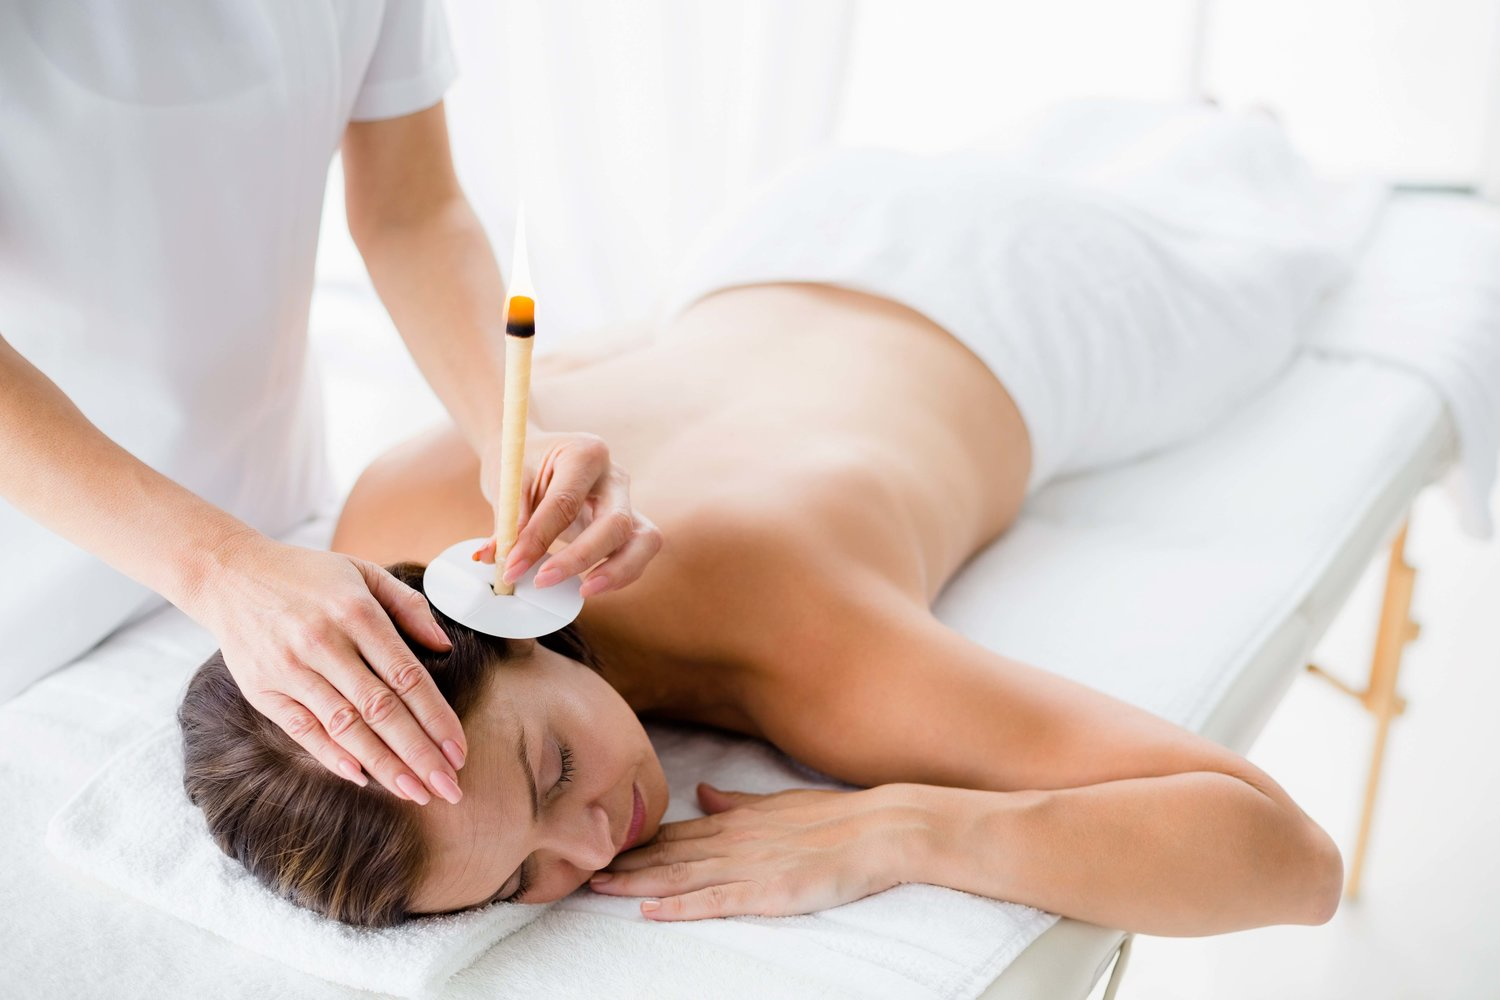 EAR CANDLING (THERMAL-AURICULAR THERAPY)